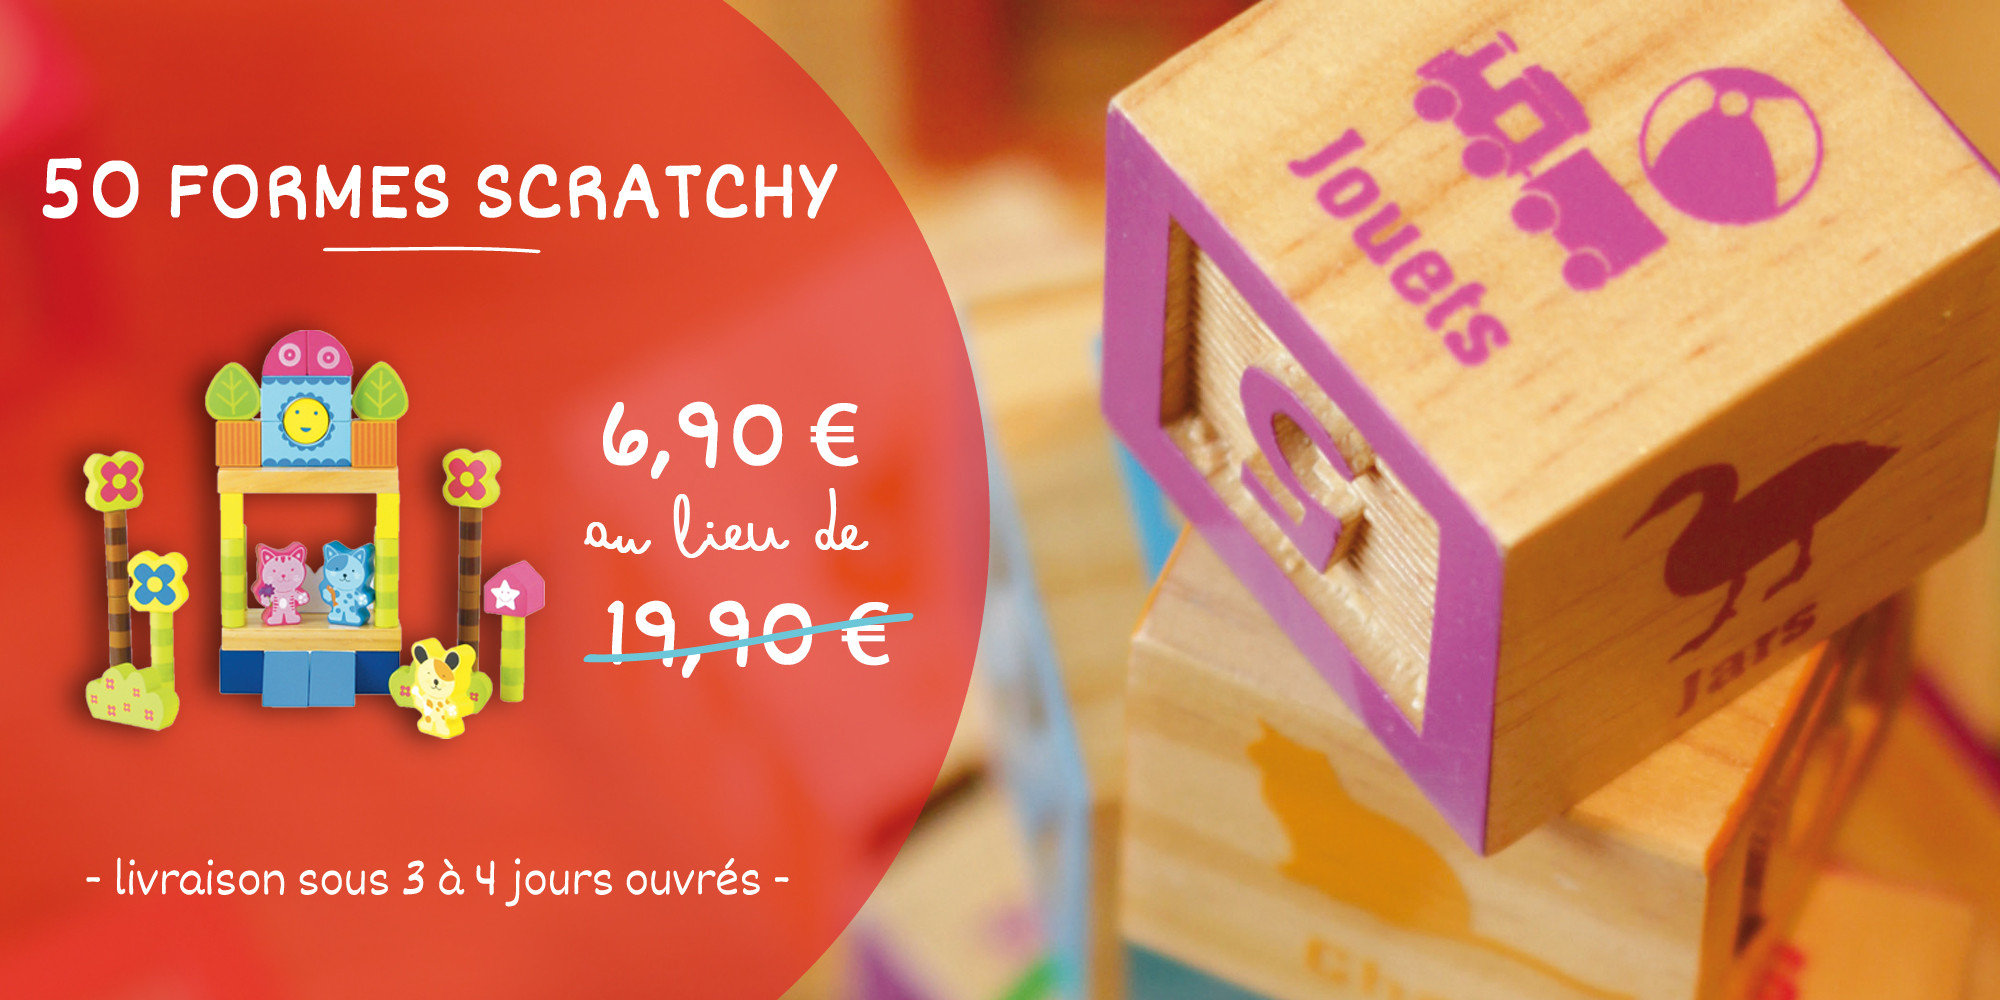 Scratchy's Wooden Blocks